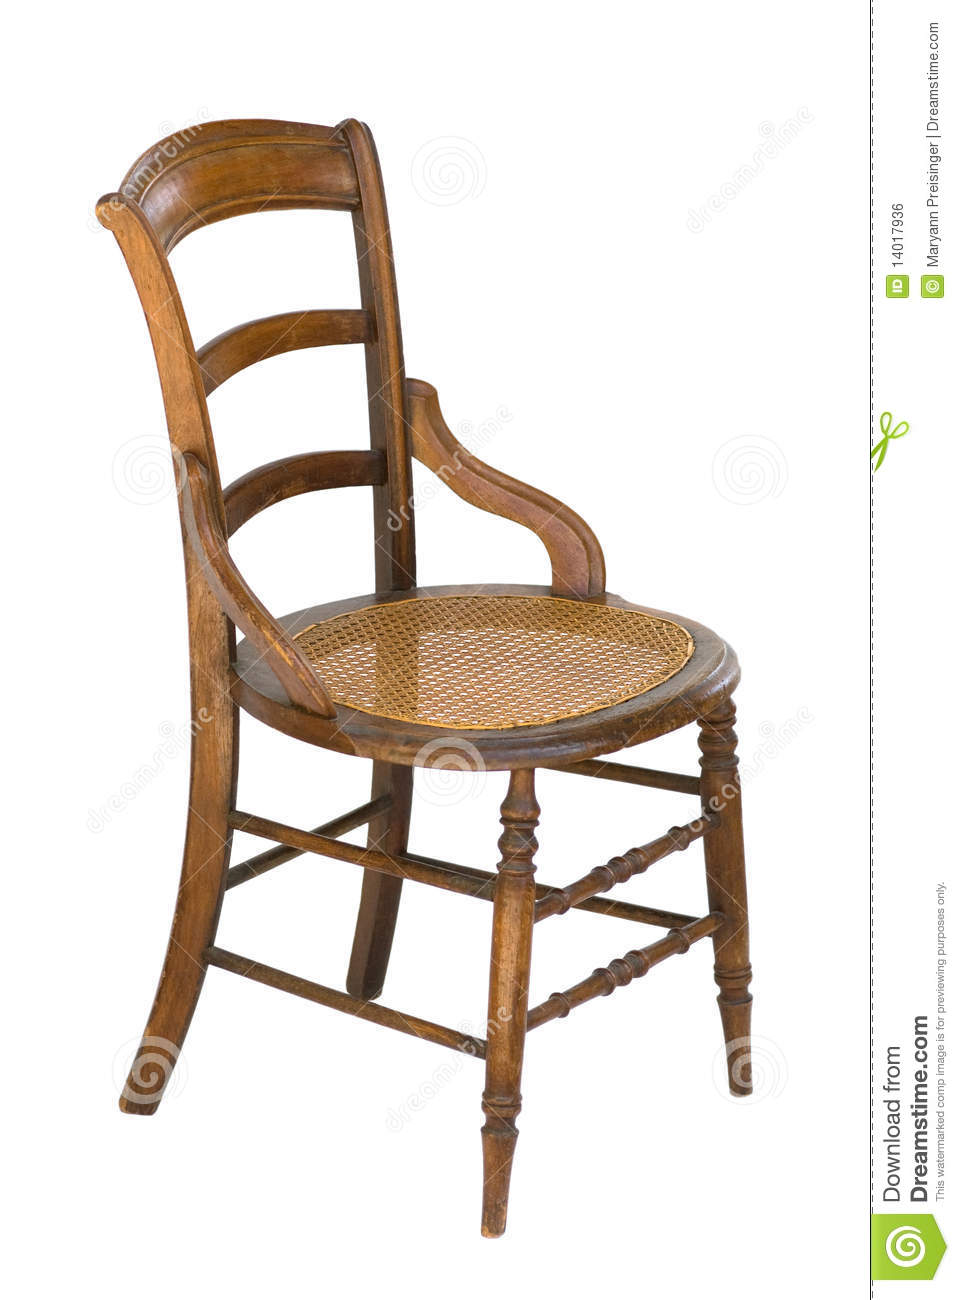 Exceptionnel Cane Seat Antique Wood Vintage Chair   Isolated